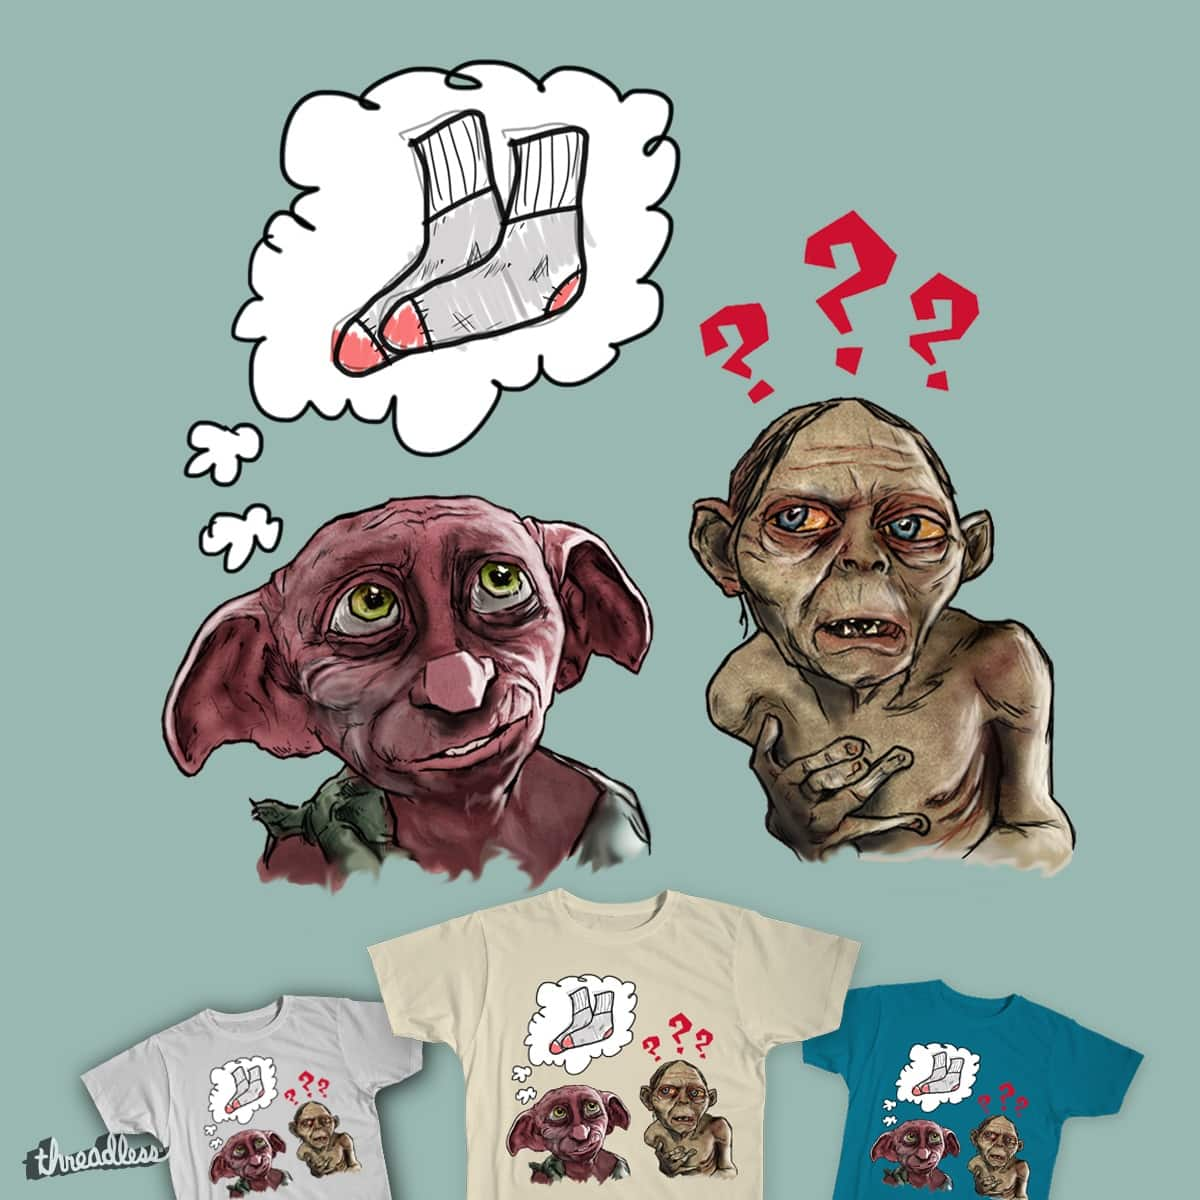 Precious = Socks??? by seejayjawn5 on Threadless